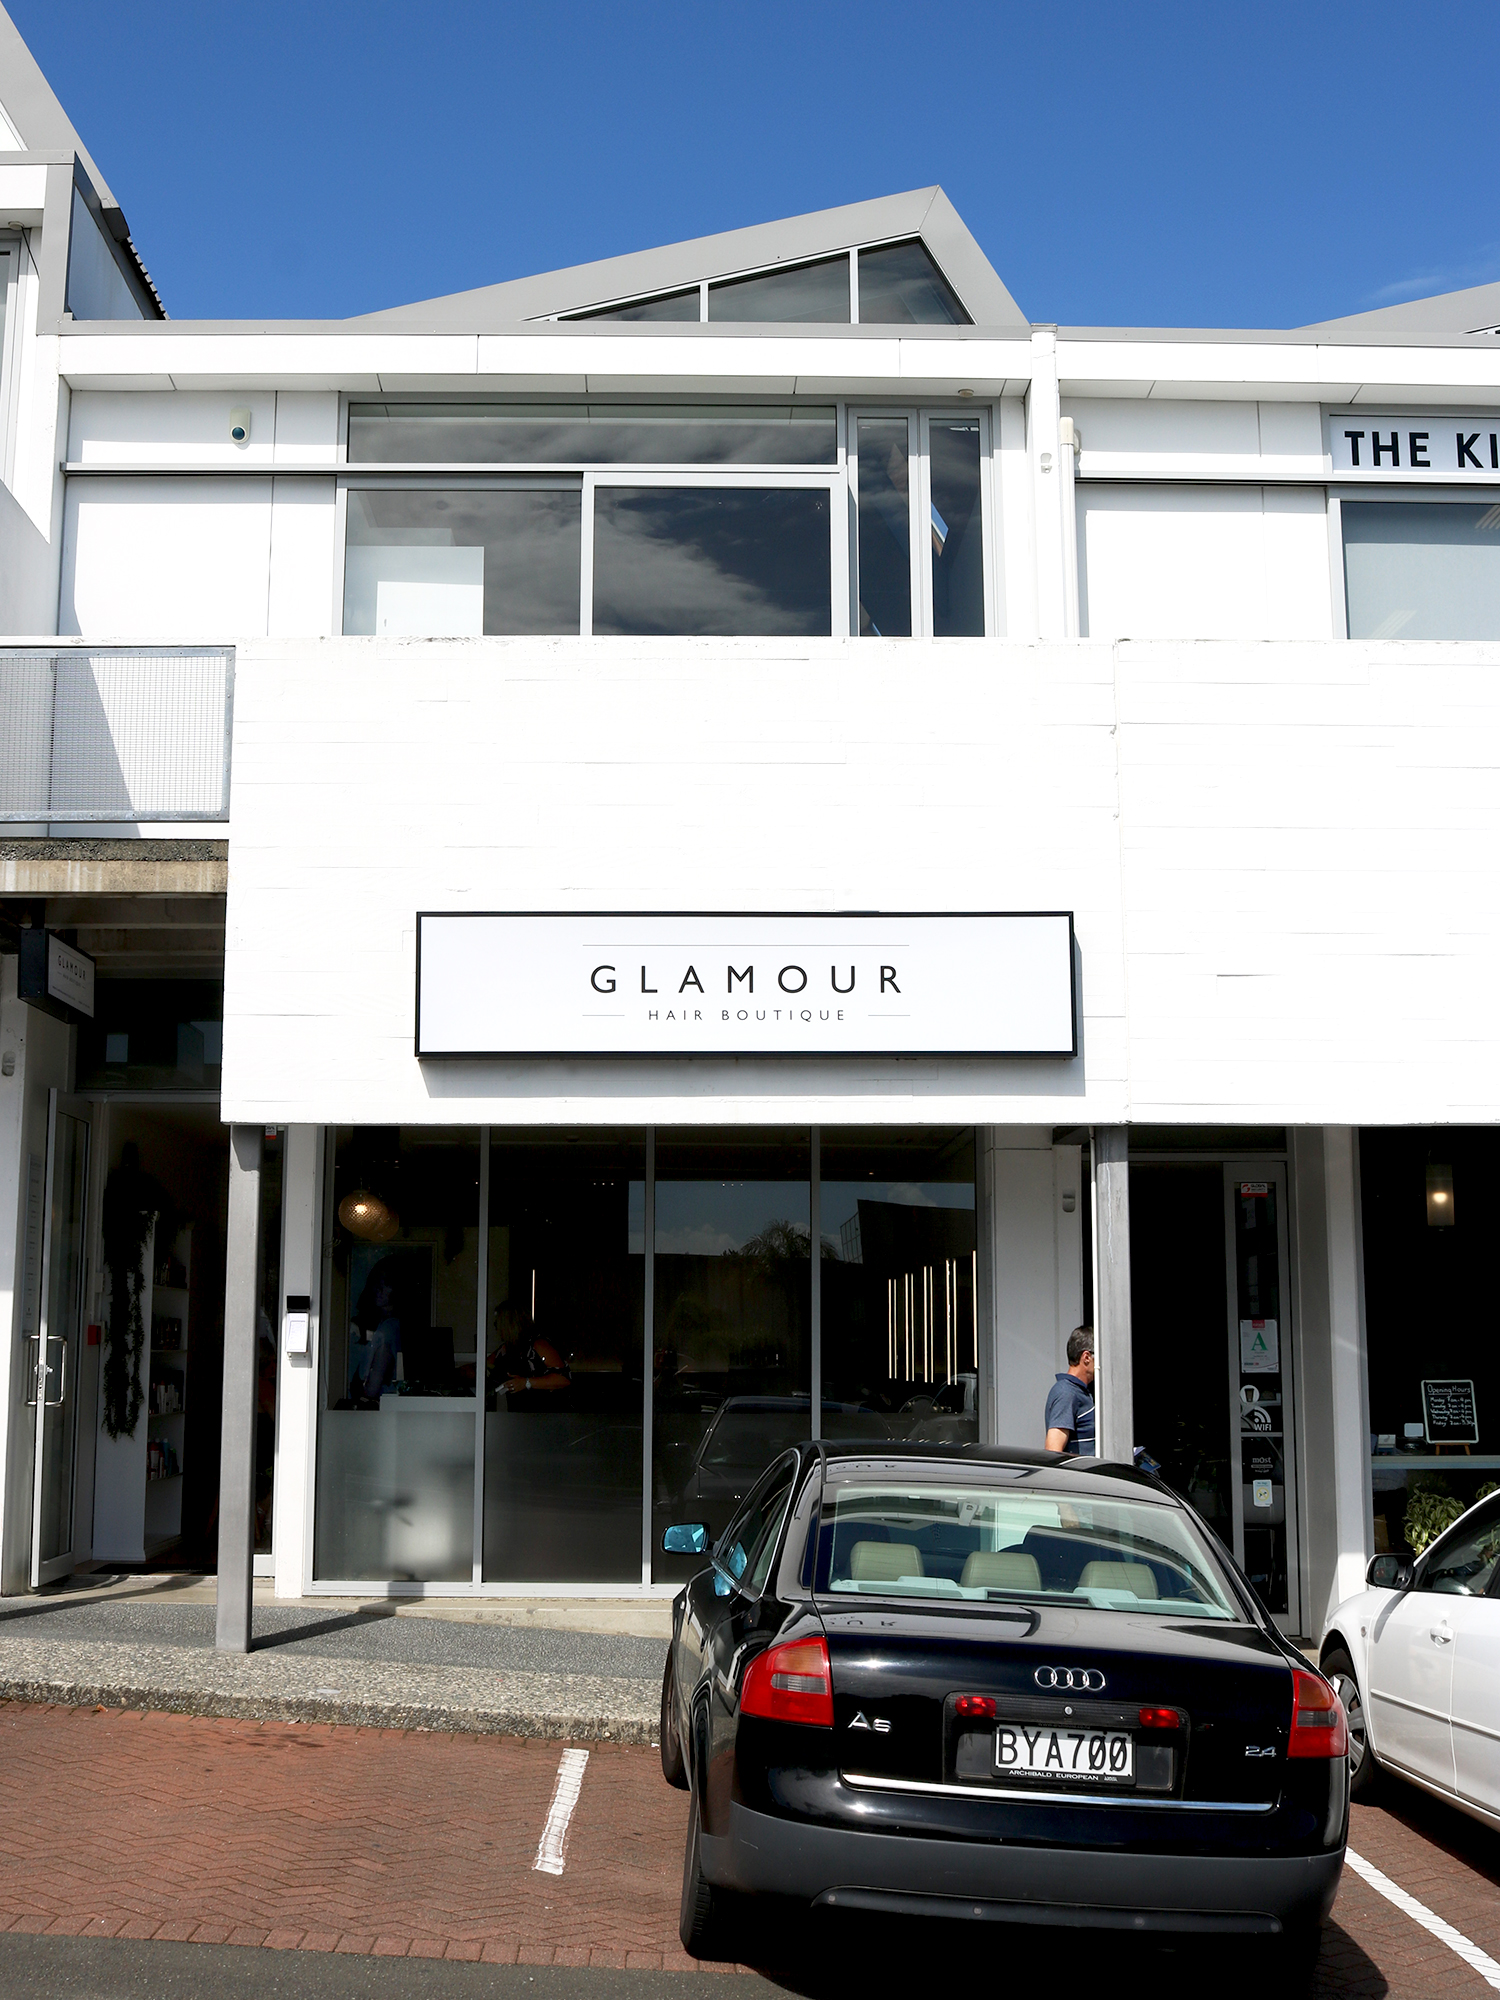 Glamour Hair Boutique Exterior Signage